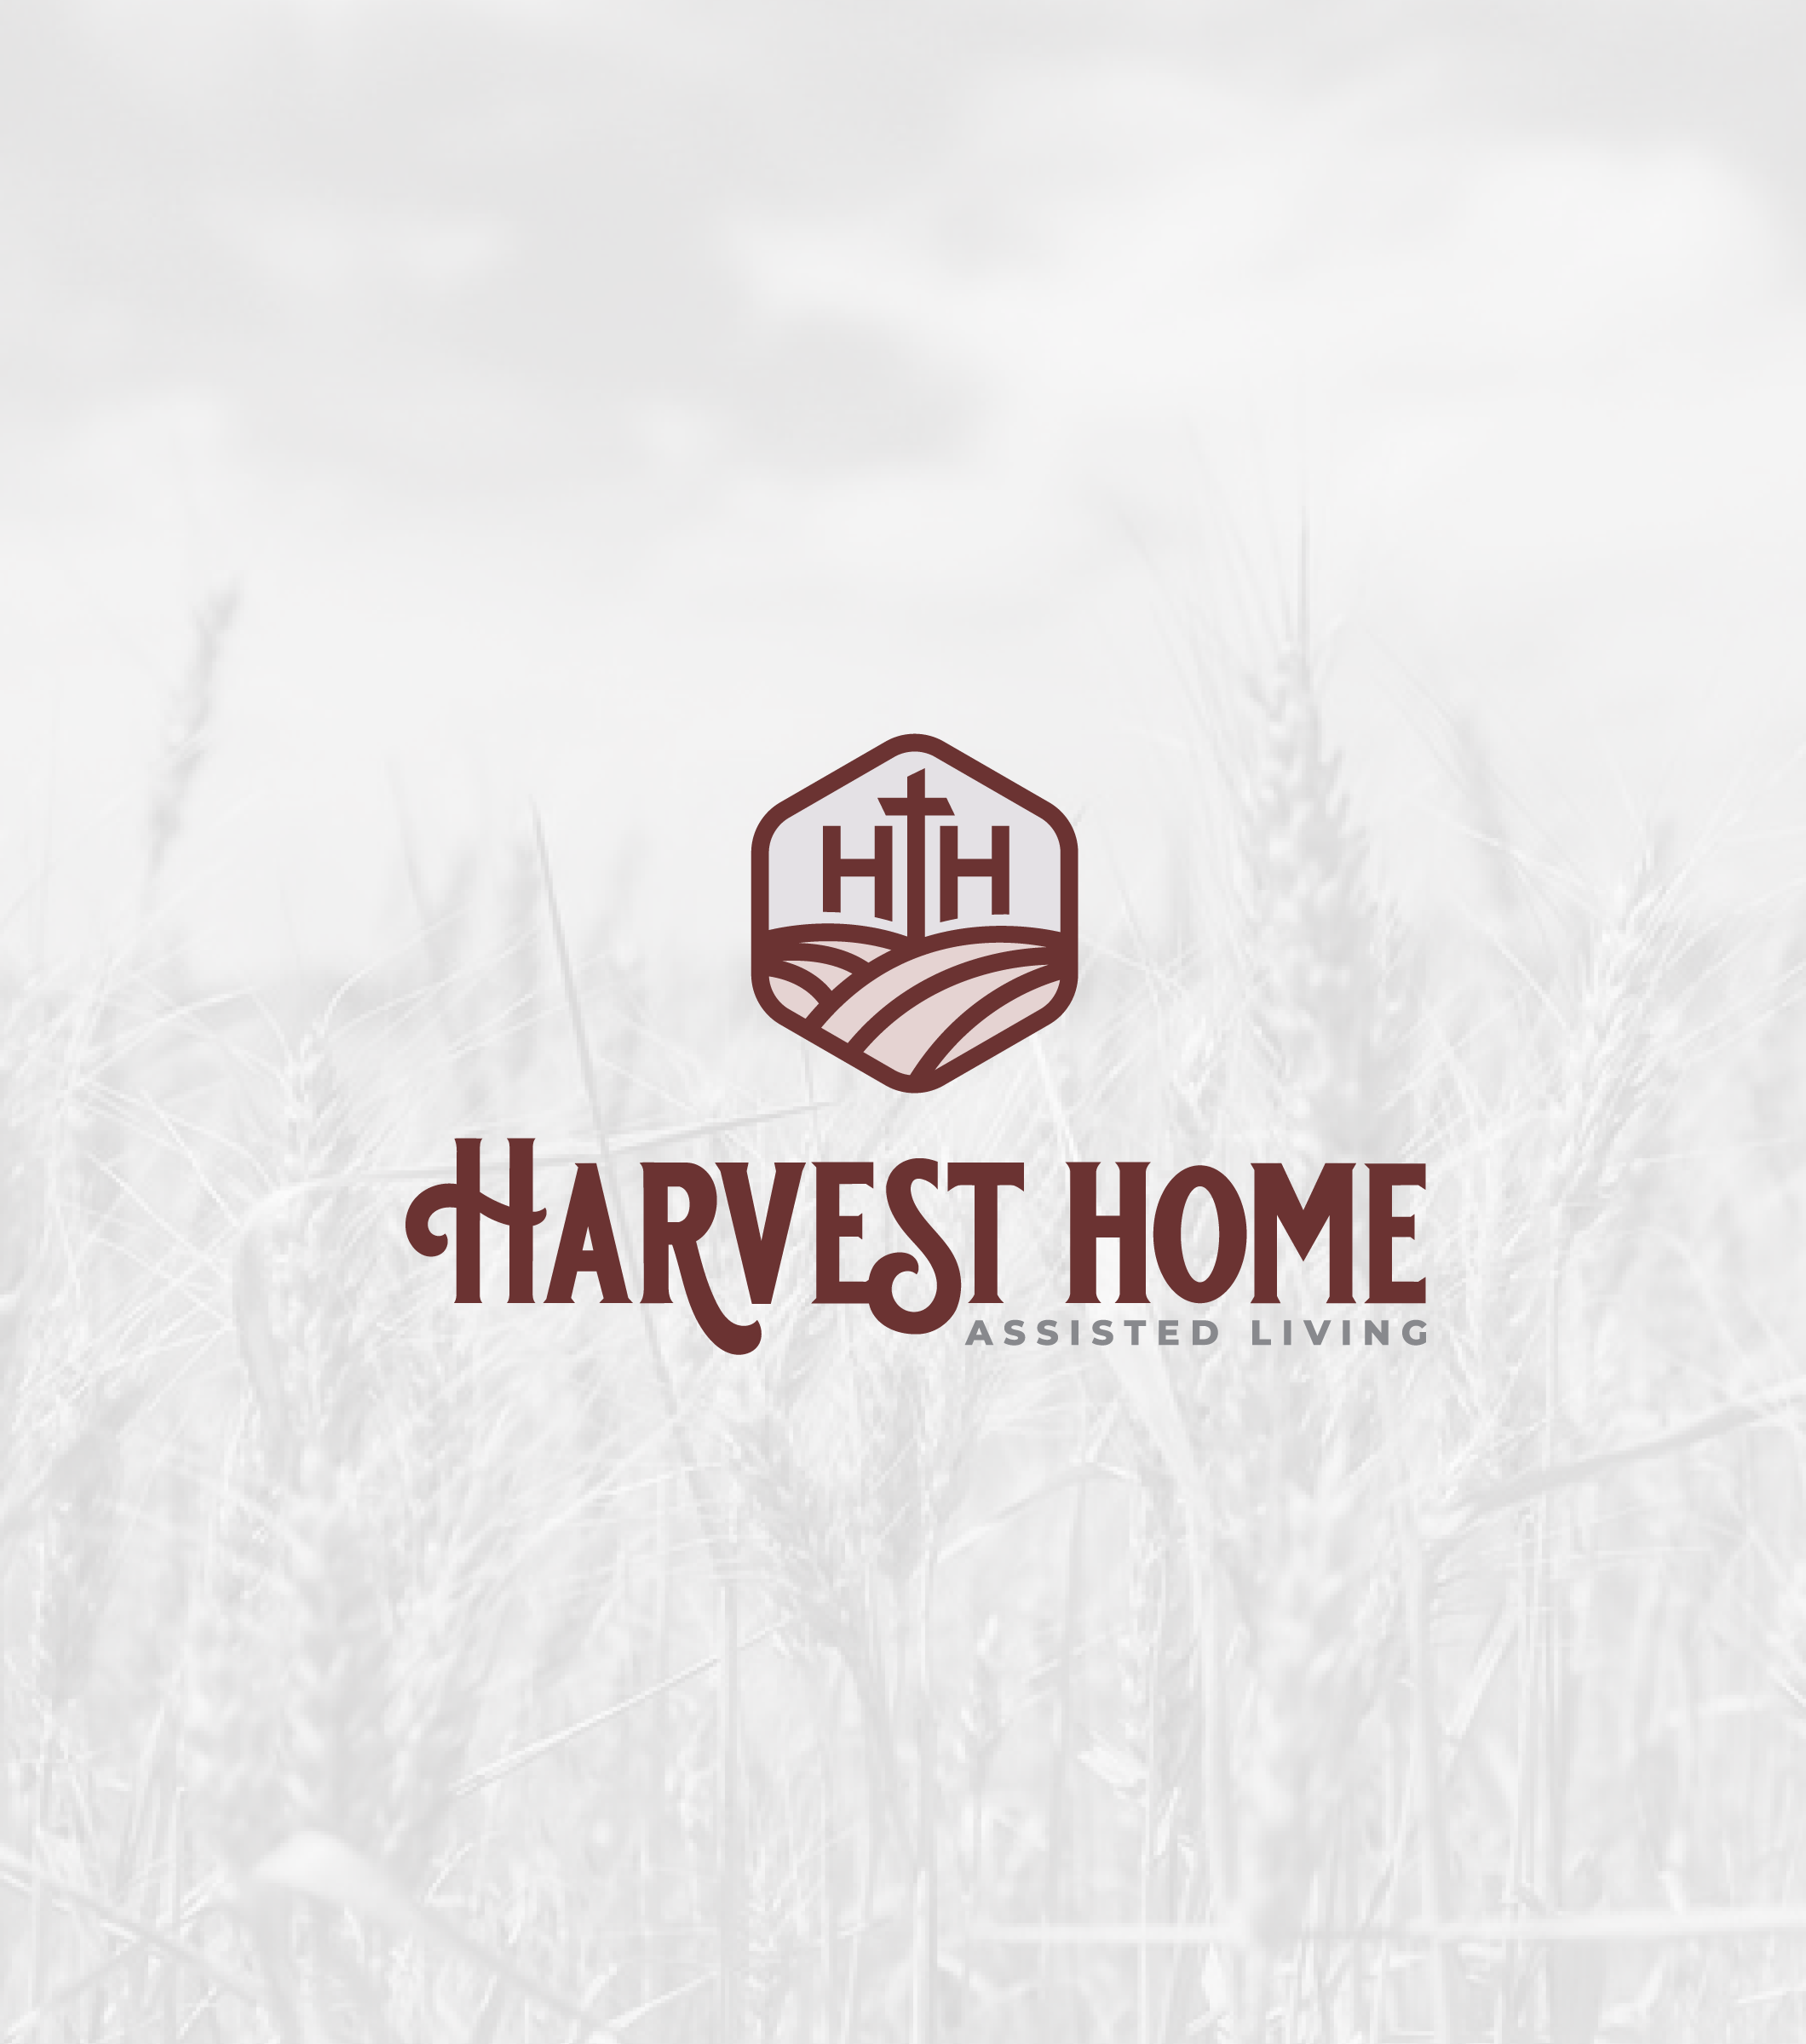 BRAND IDENTITY / MARKETING STRATEGY / VIDEO + PHOTO   HARVEST HOME ASSISTED LIVING  The Harvest Home Assisted Living is an assisted living that specializes in Dementia care based in Howards Grove, WI with strong Christian values and a beautiful country setting.